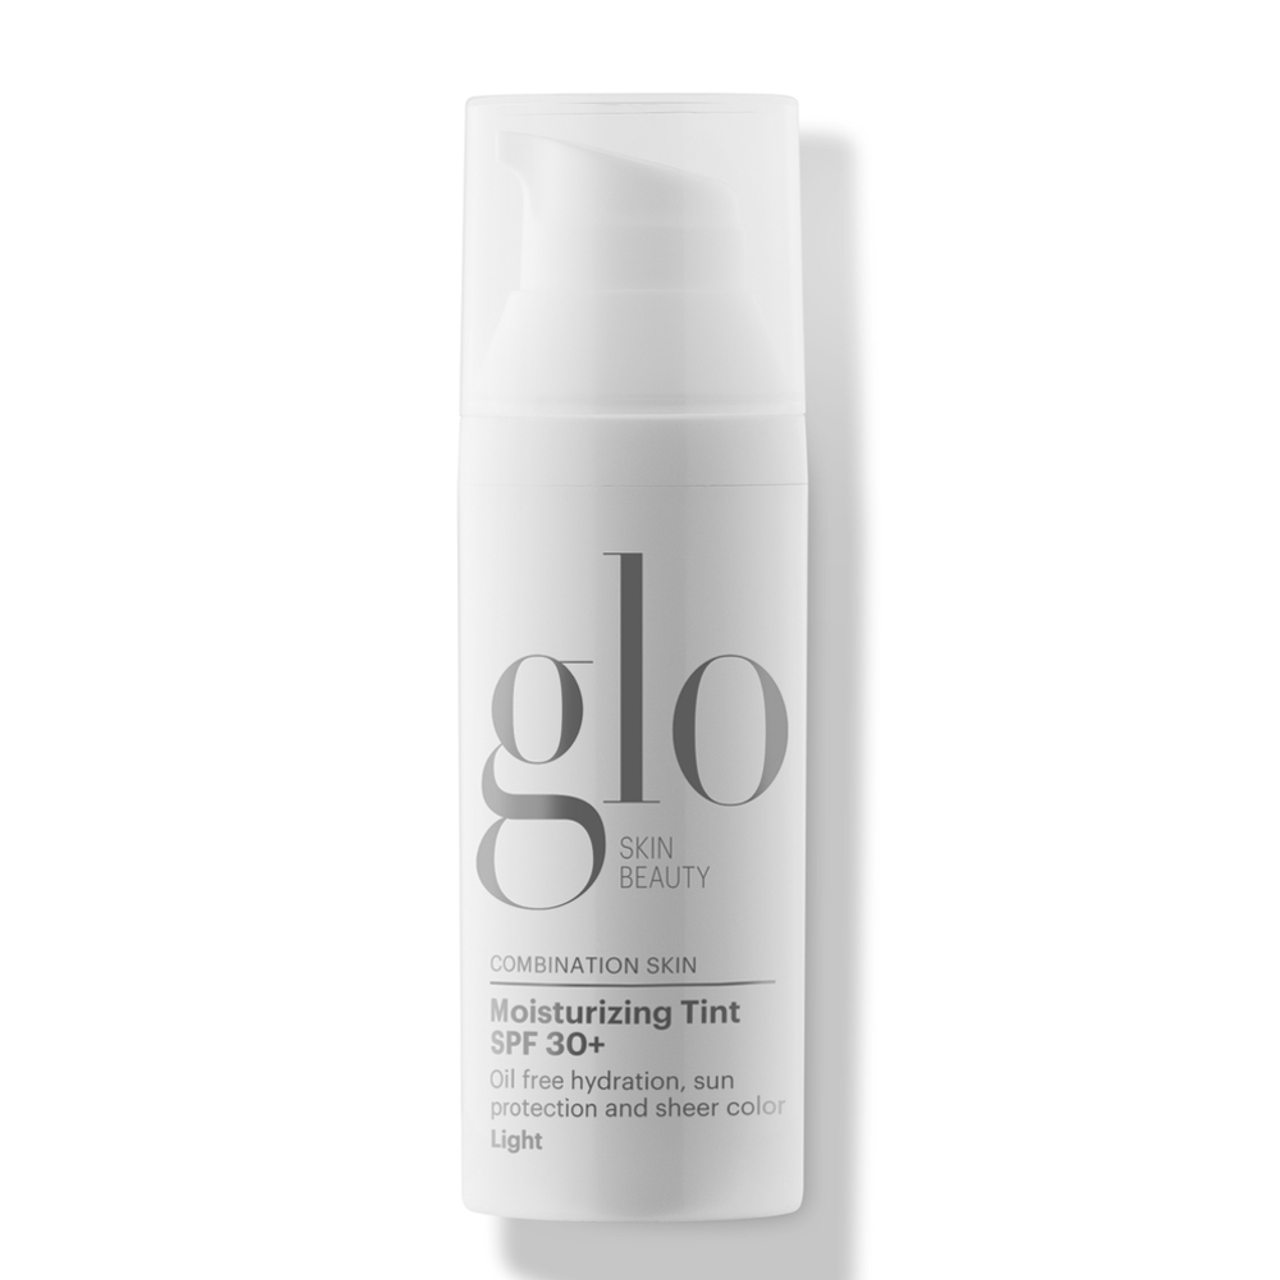 glo Skin Beauty Moisturizing Tint SPF 30+ Fair